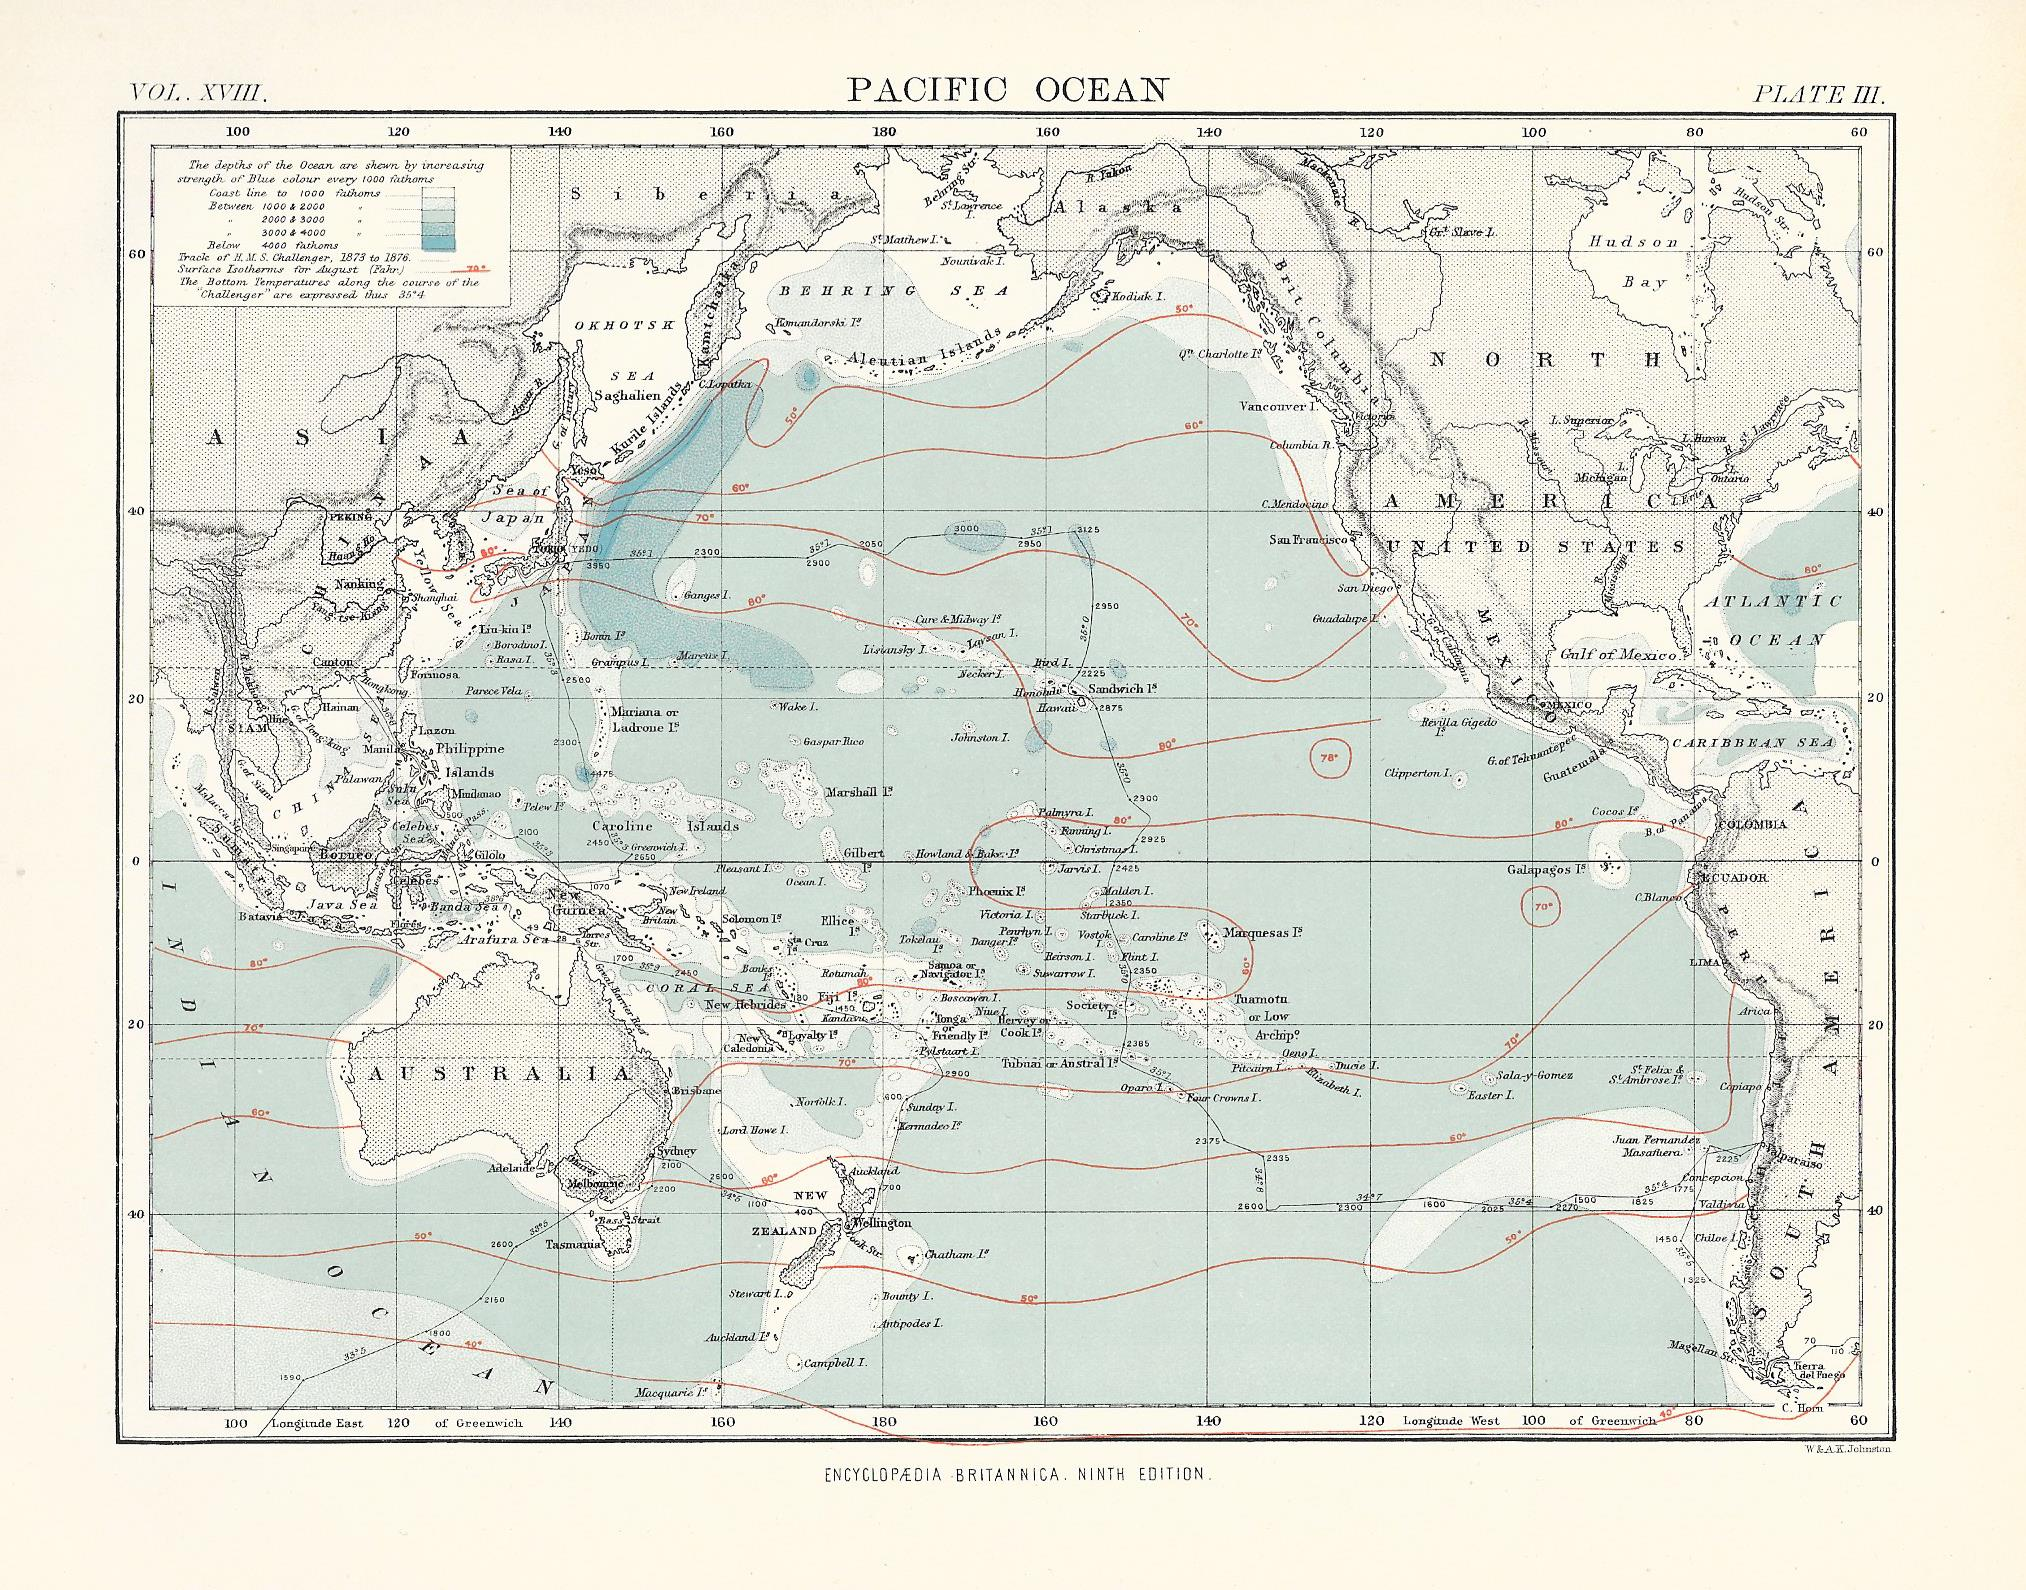 Pacific-Ocean-antique-map-Encyclopaedia-Britannica